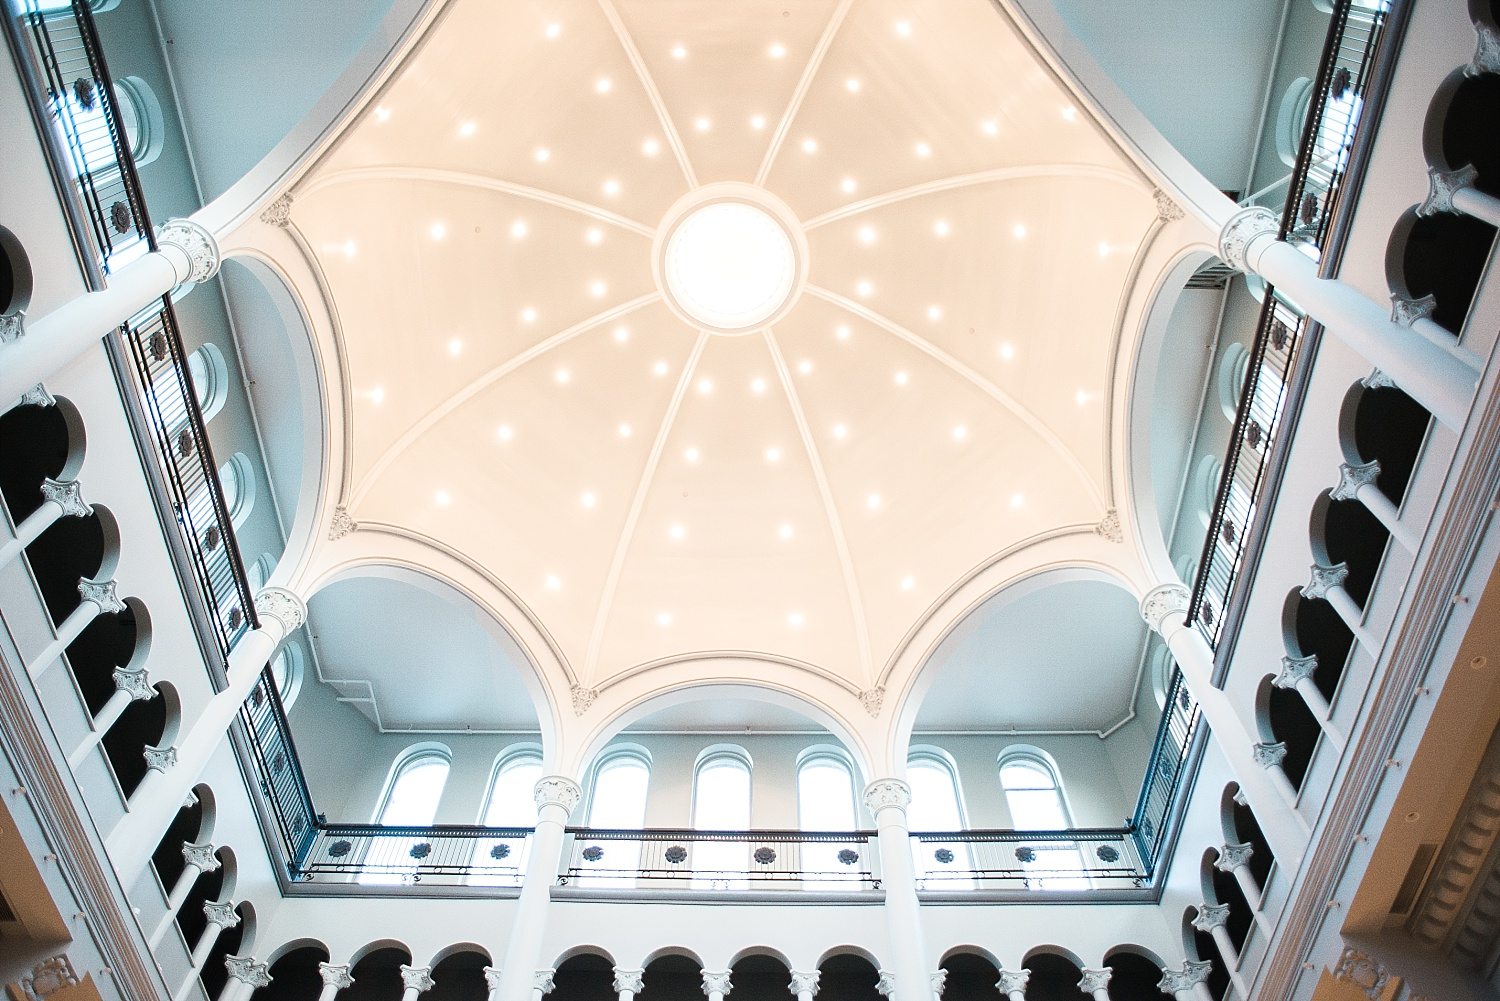 Limestone Hall is absolutely amazing!  Love this view of the domed ceiling!